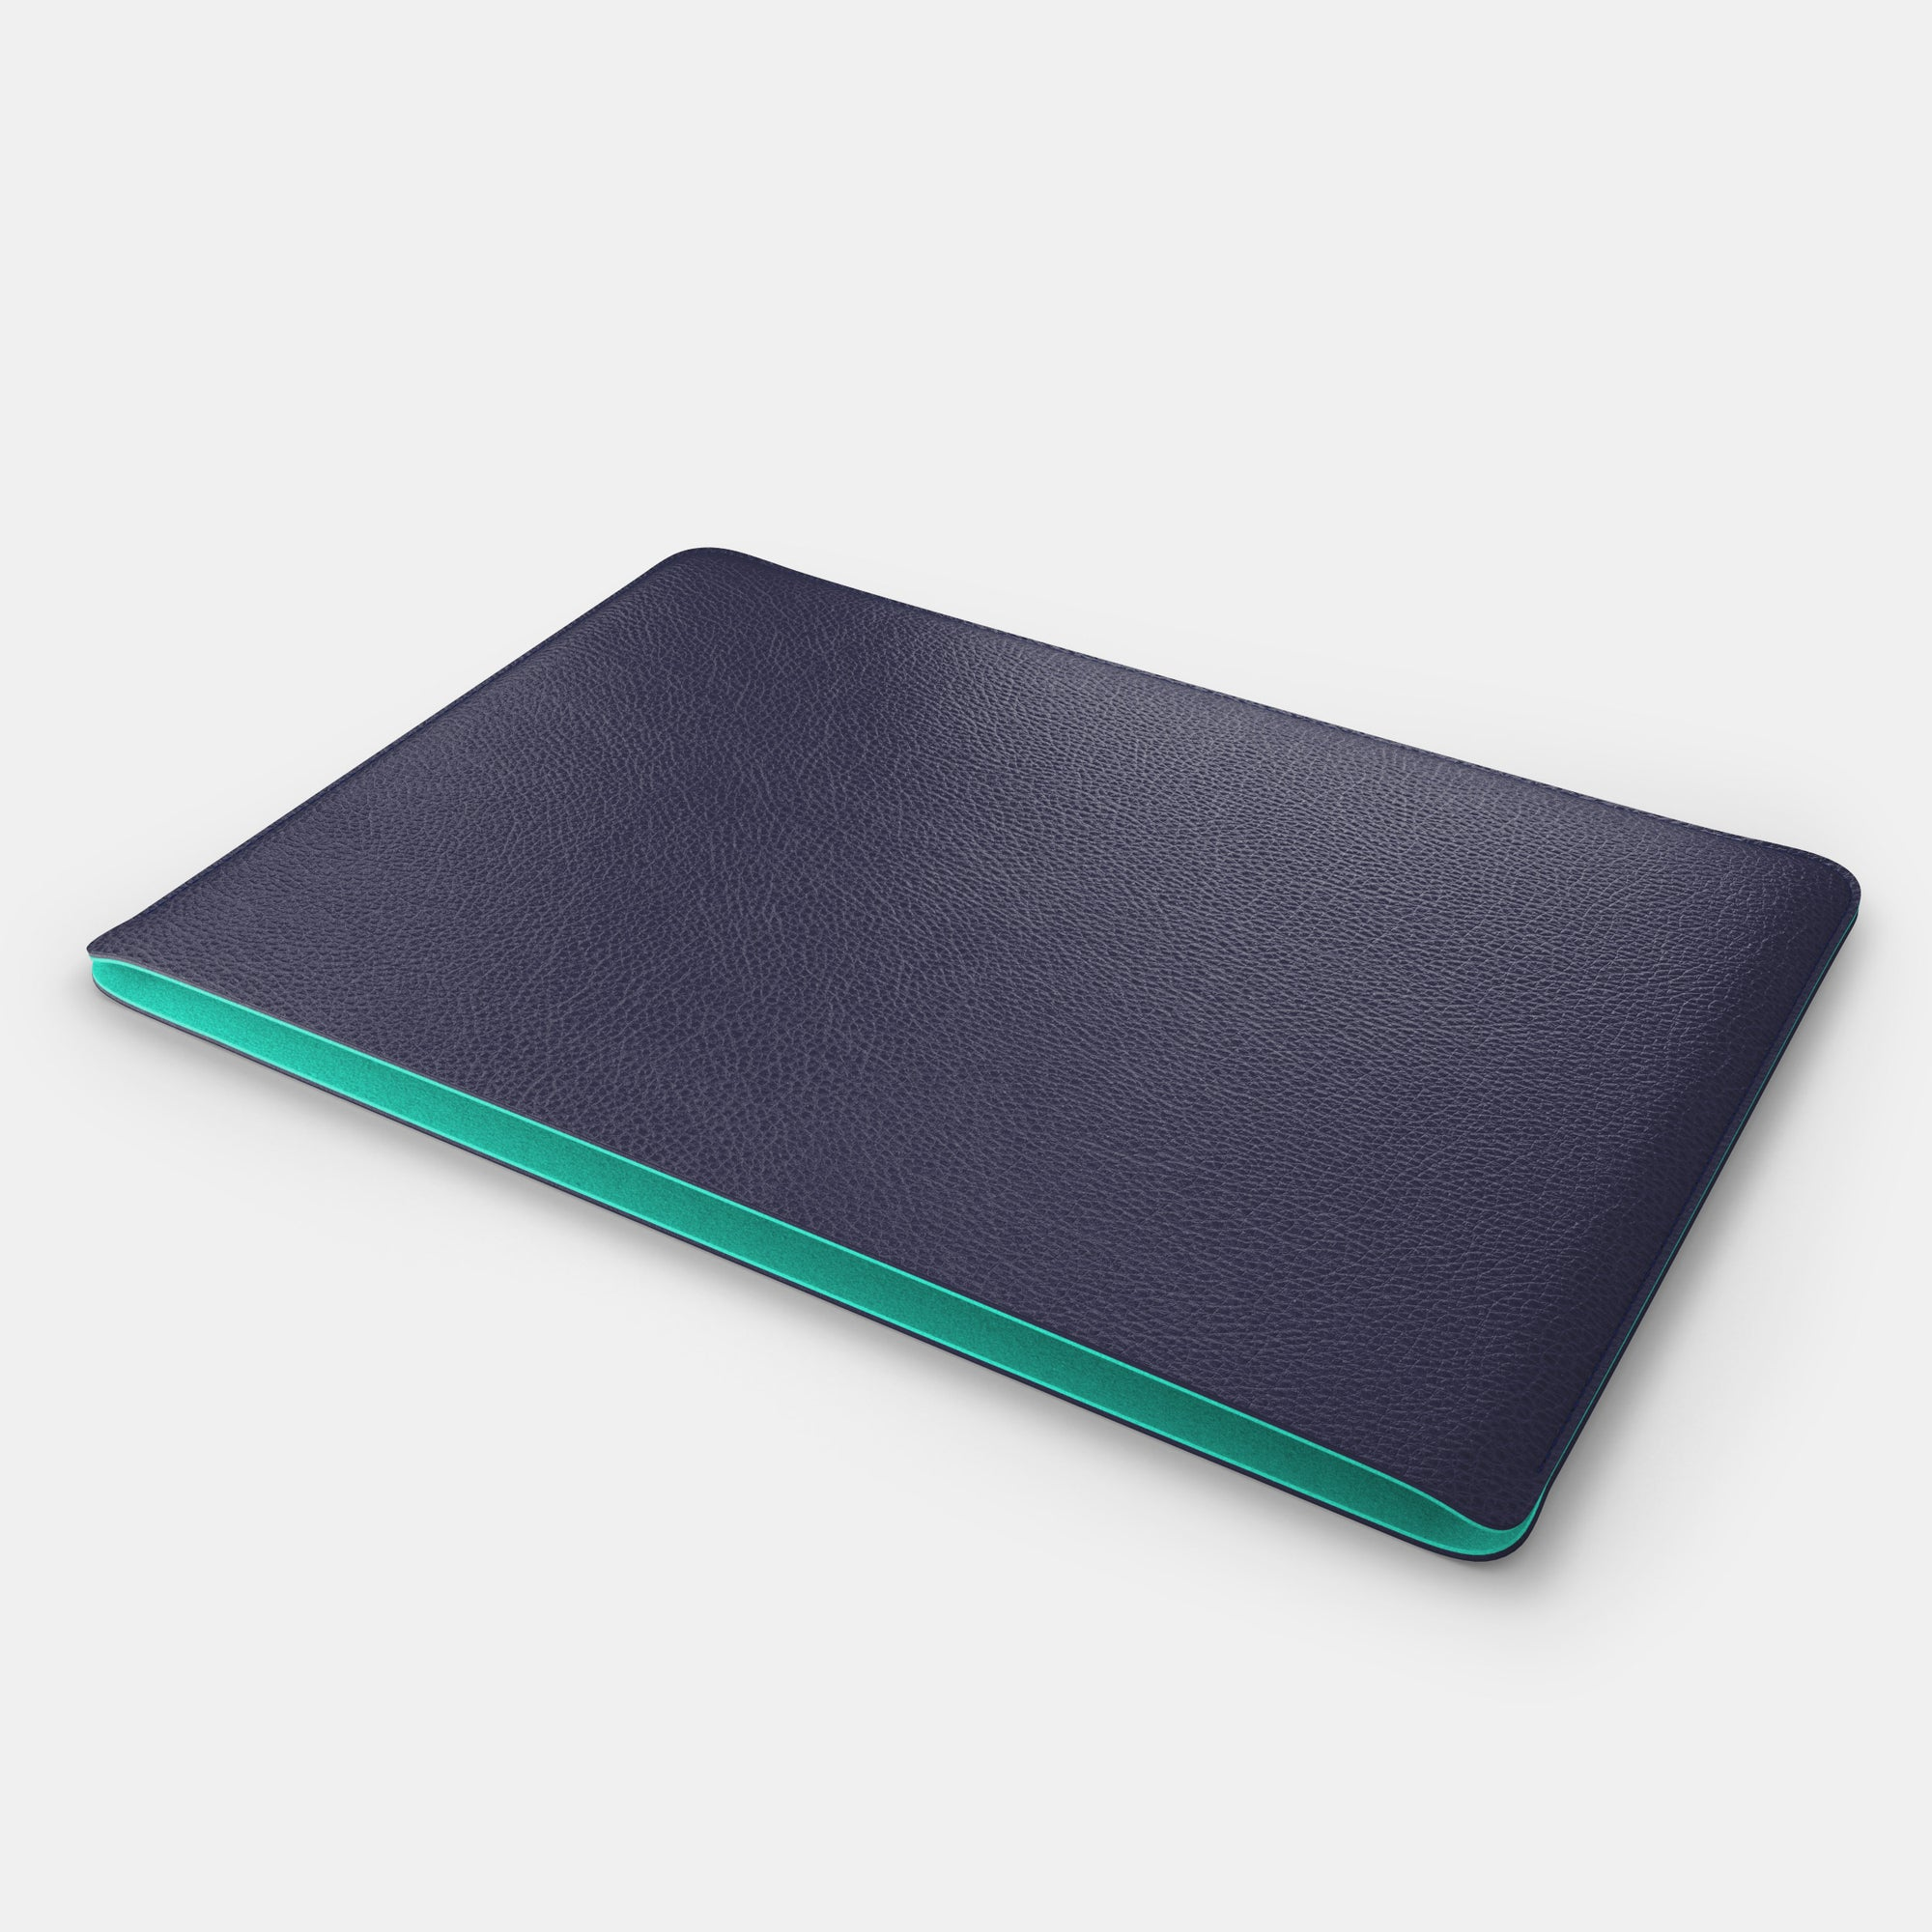 iPad Sleeve - Navy and Mint - RYAN London